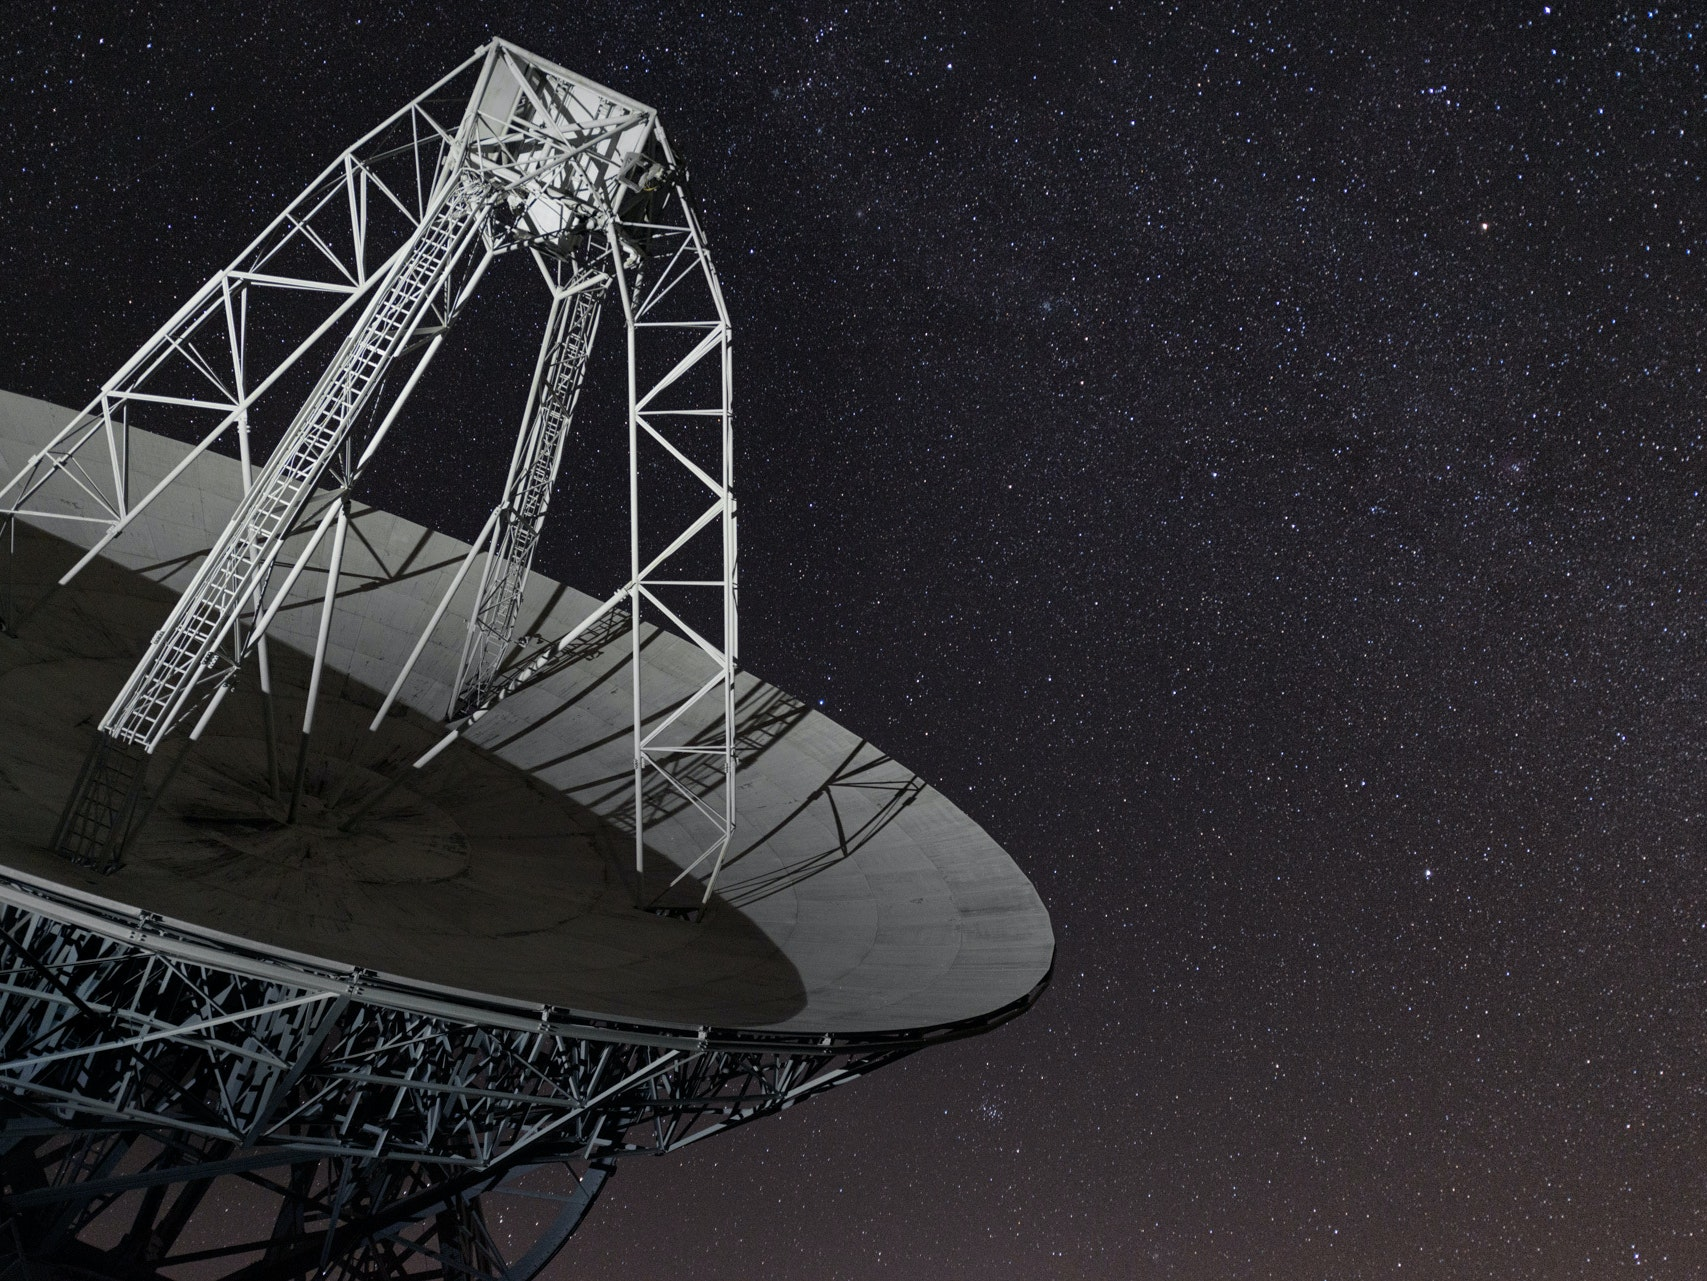 Russian Astronomers Say Weird SETI Signal Is Not Aliens